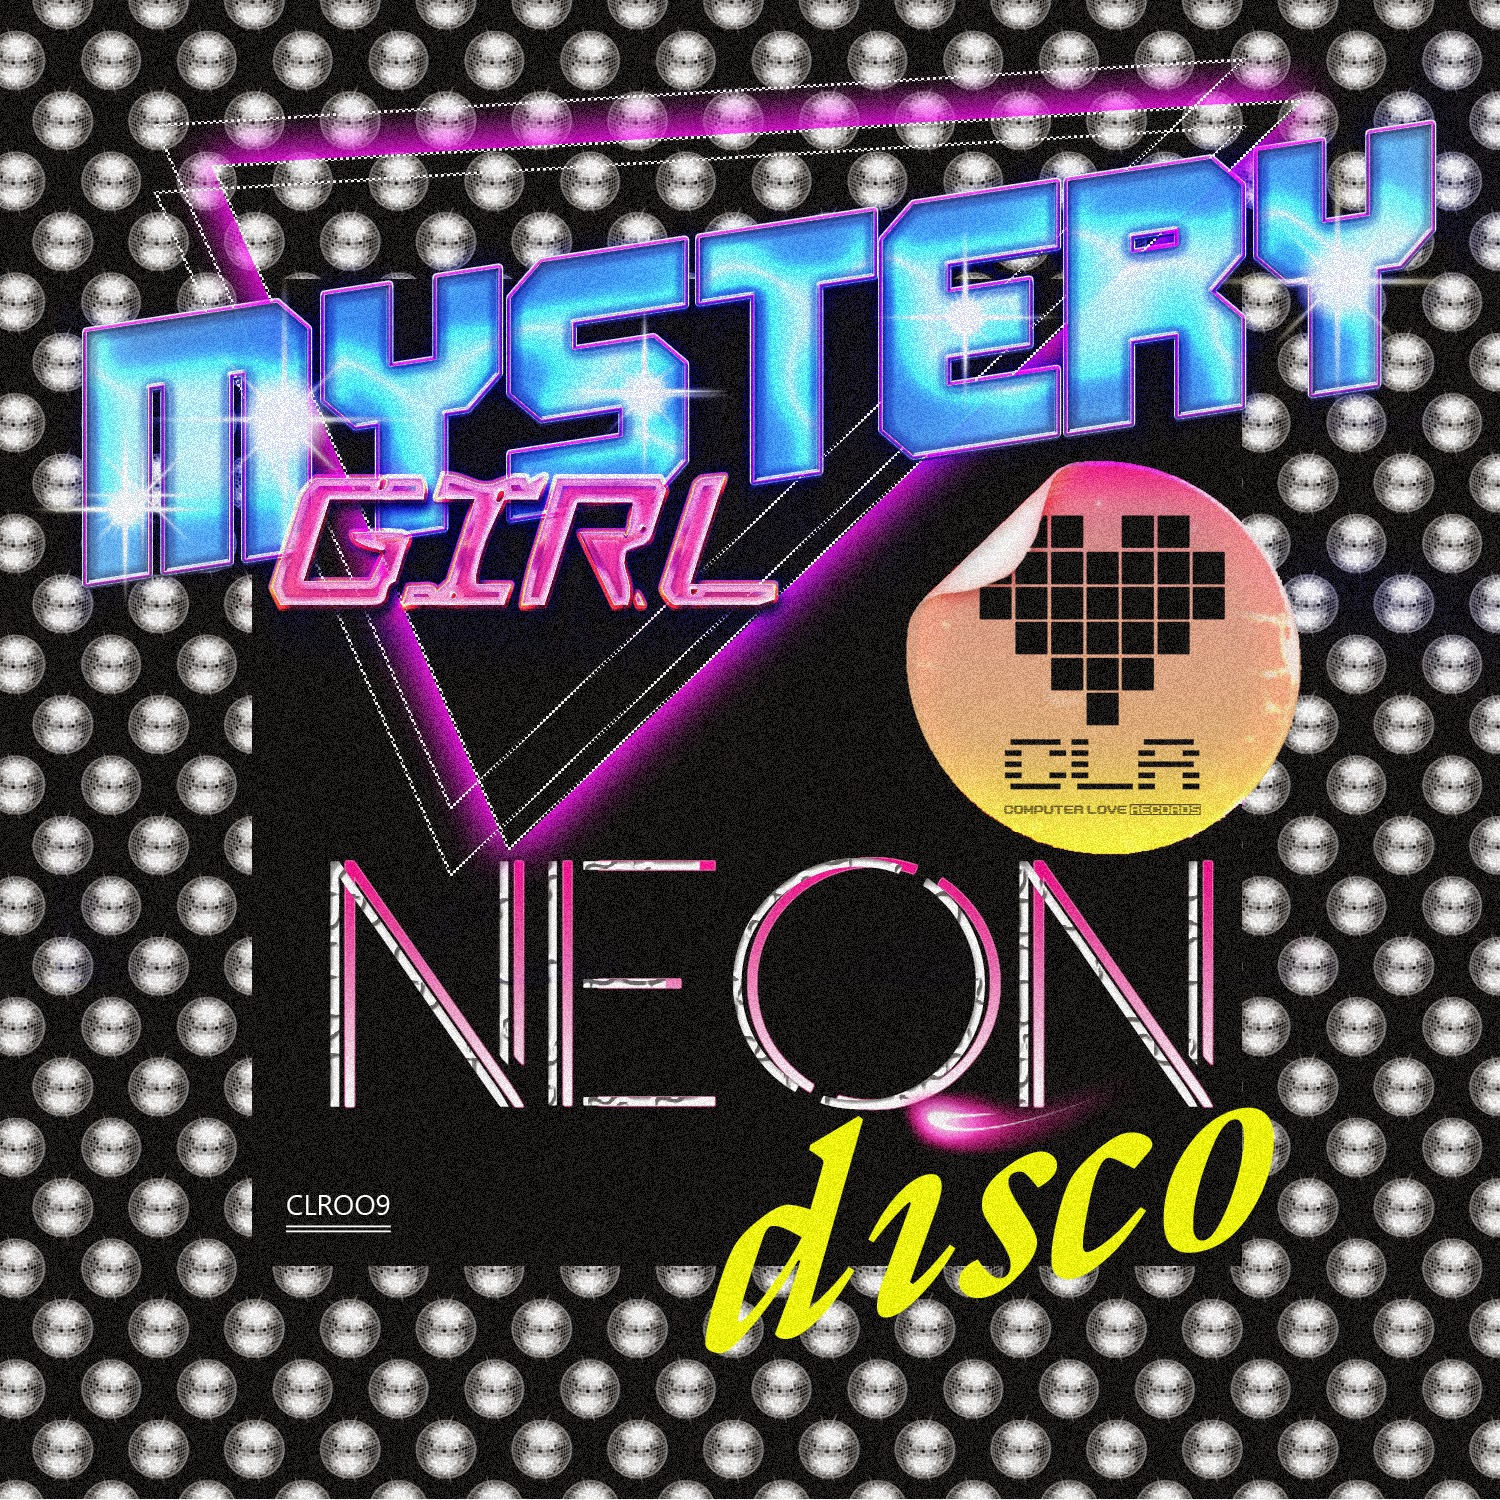 http://computerloverecords.blogspot.com/p/mystery-girl-neon-disco.html